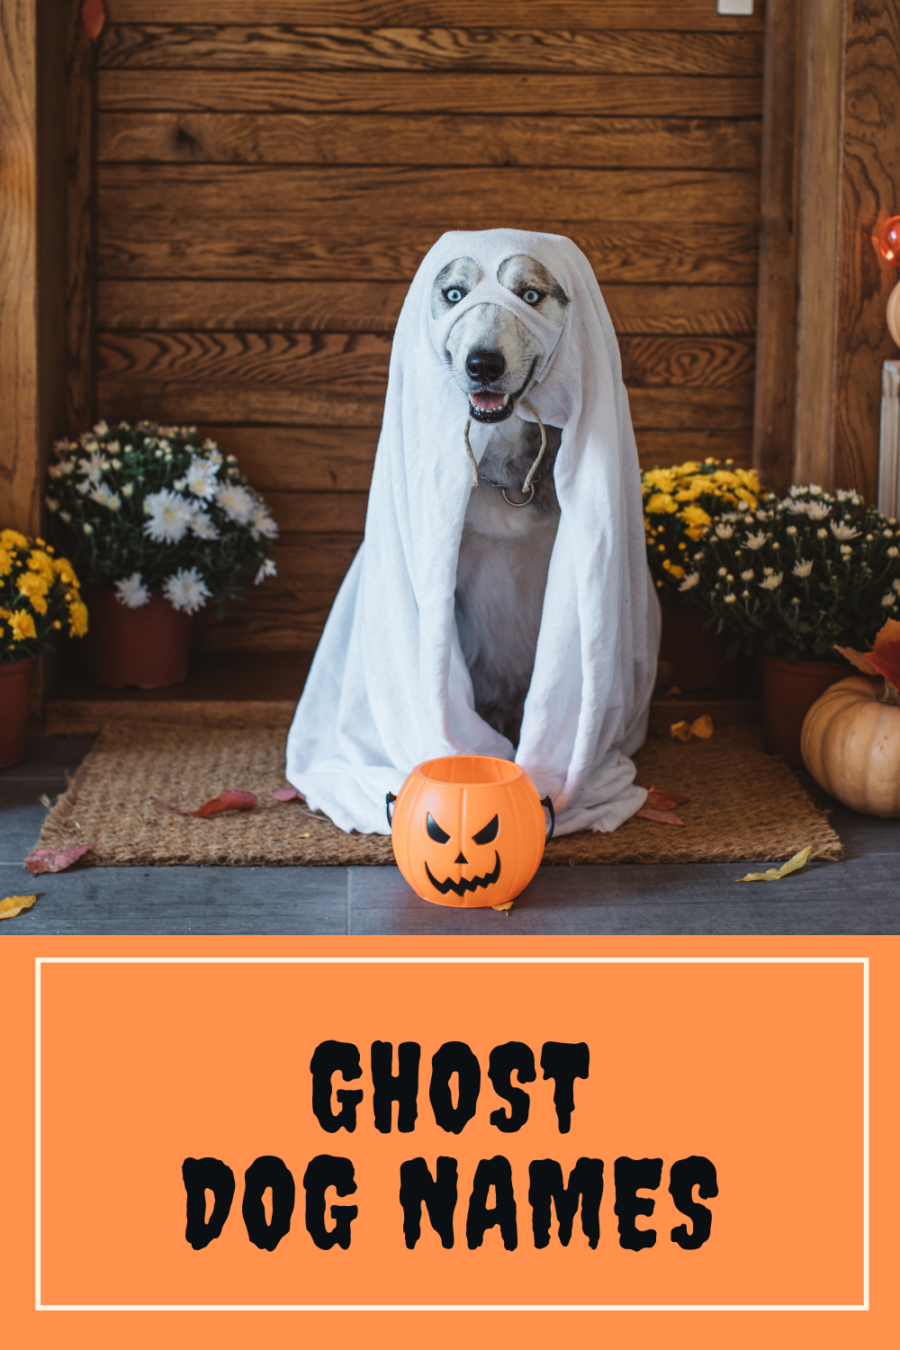 Ghost dog names